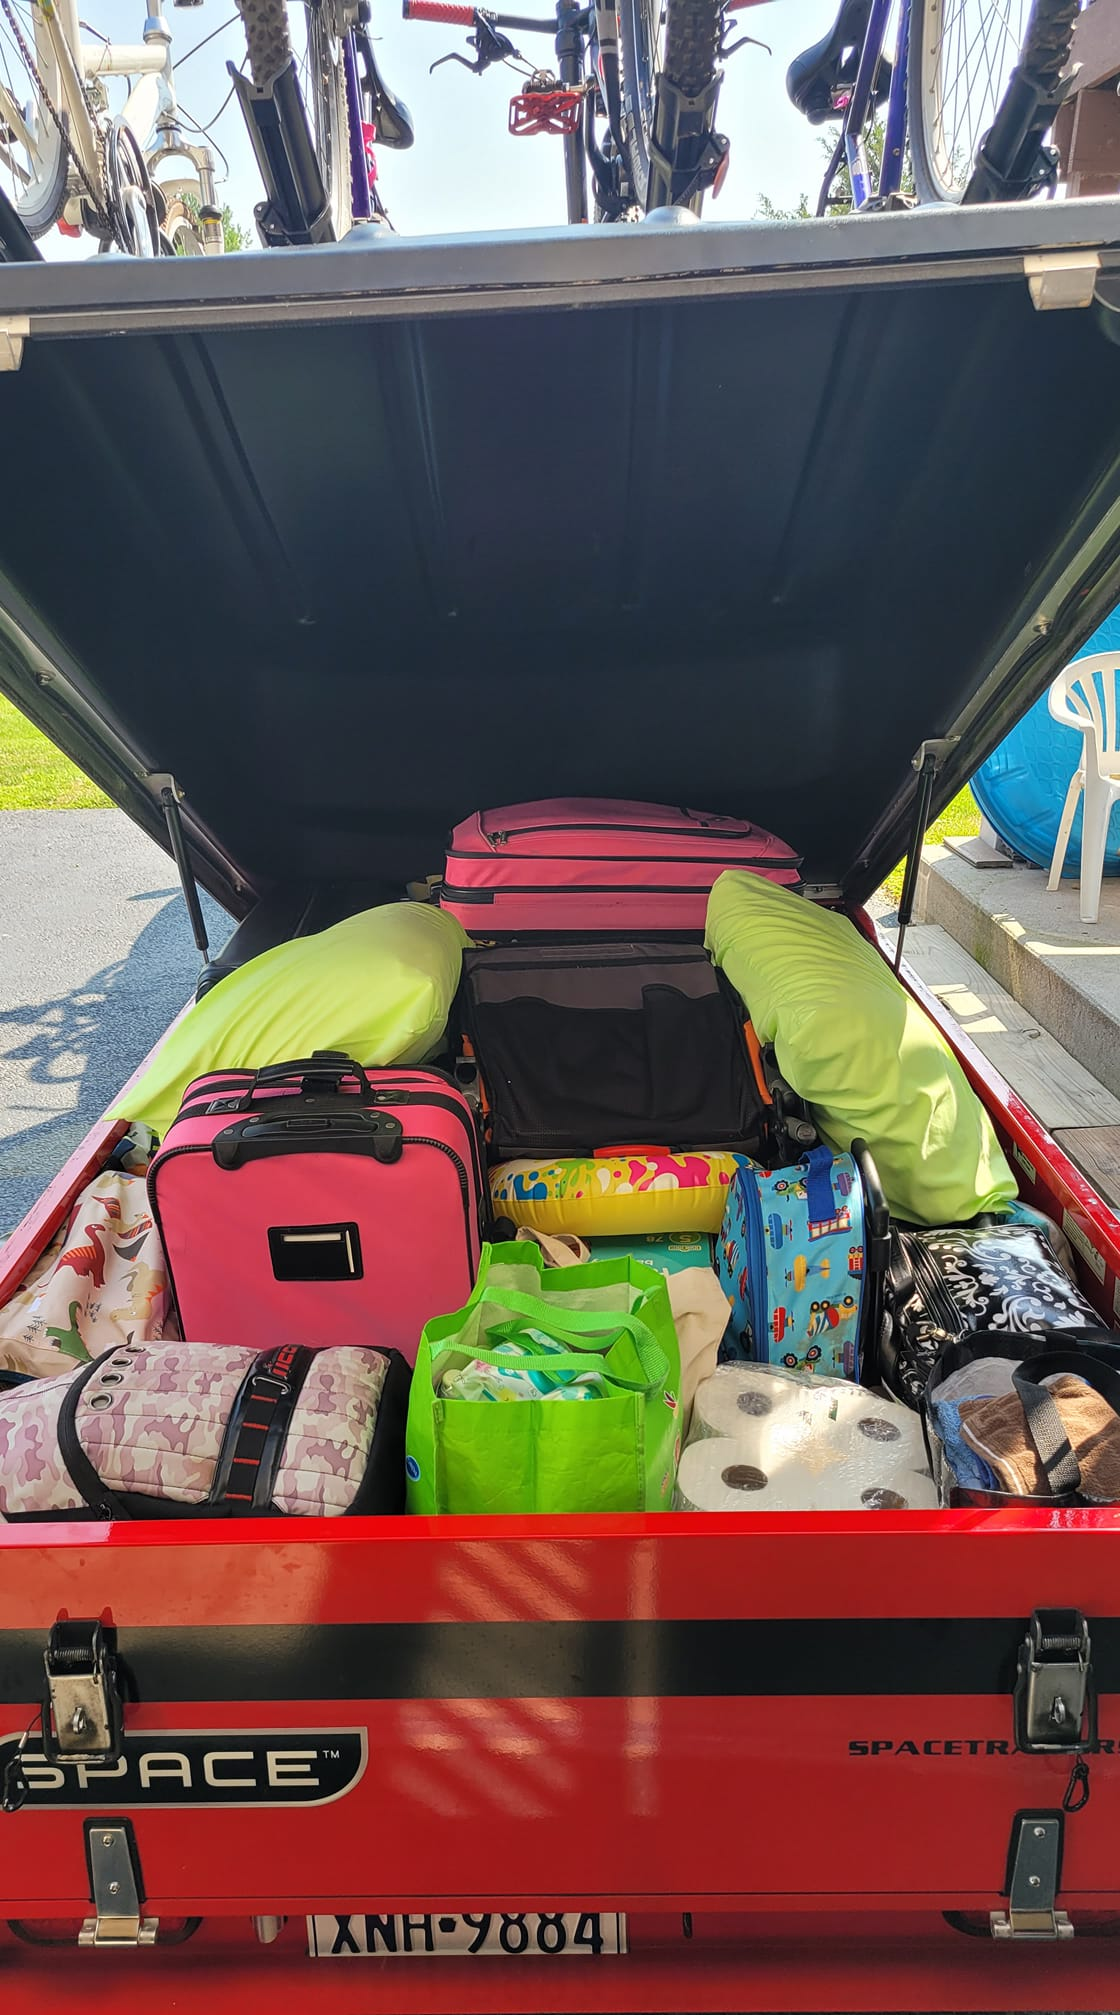 Using a Space Trailer for Family Road Trips and Extra Storage